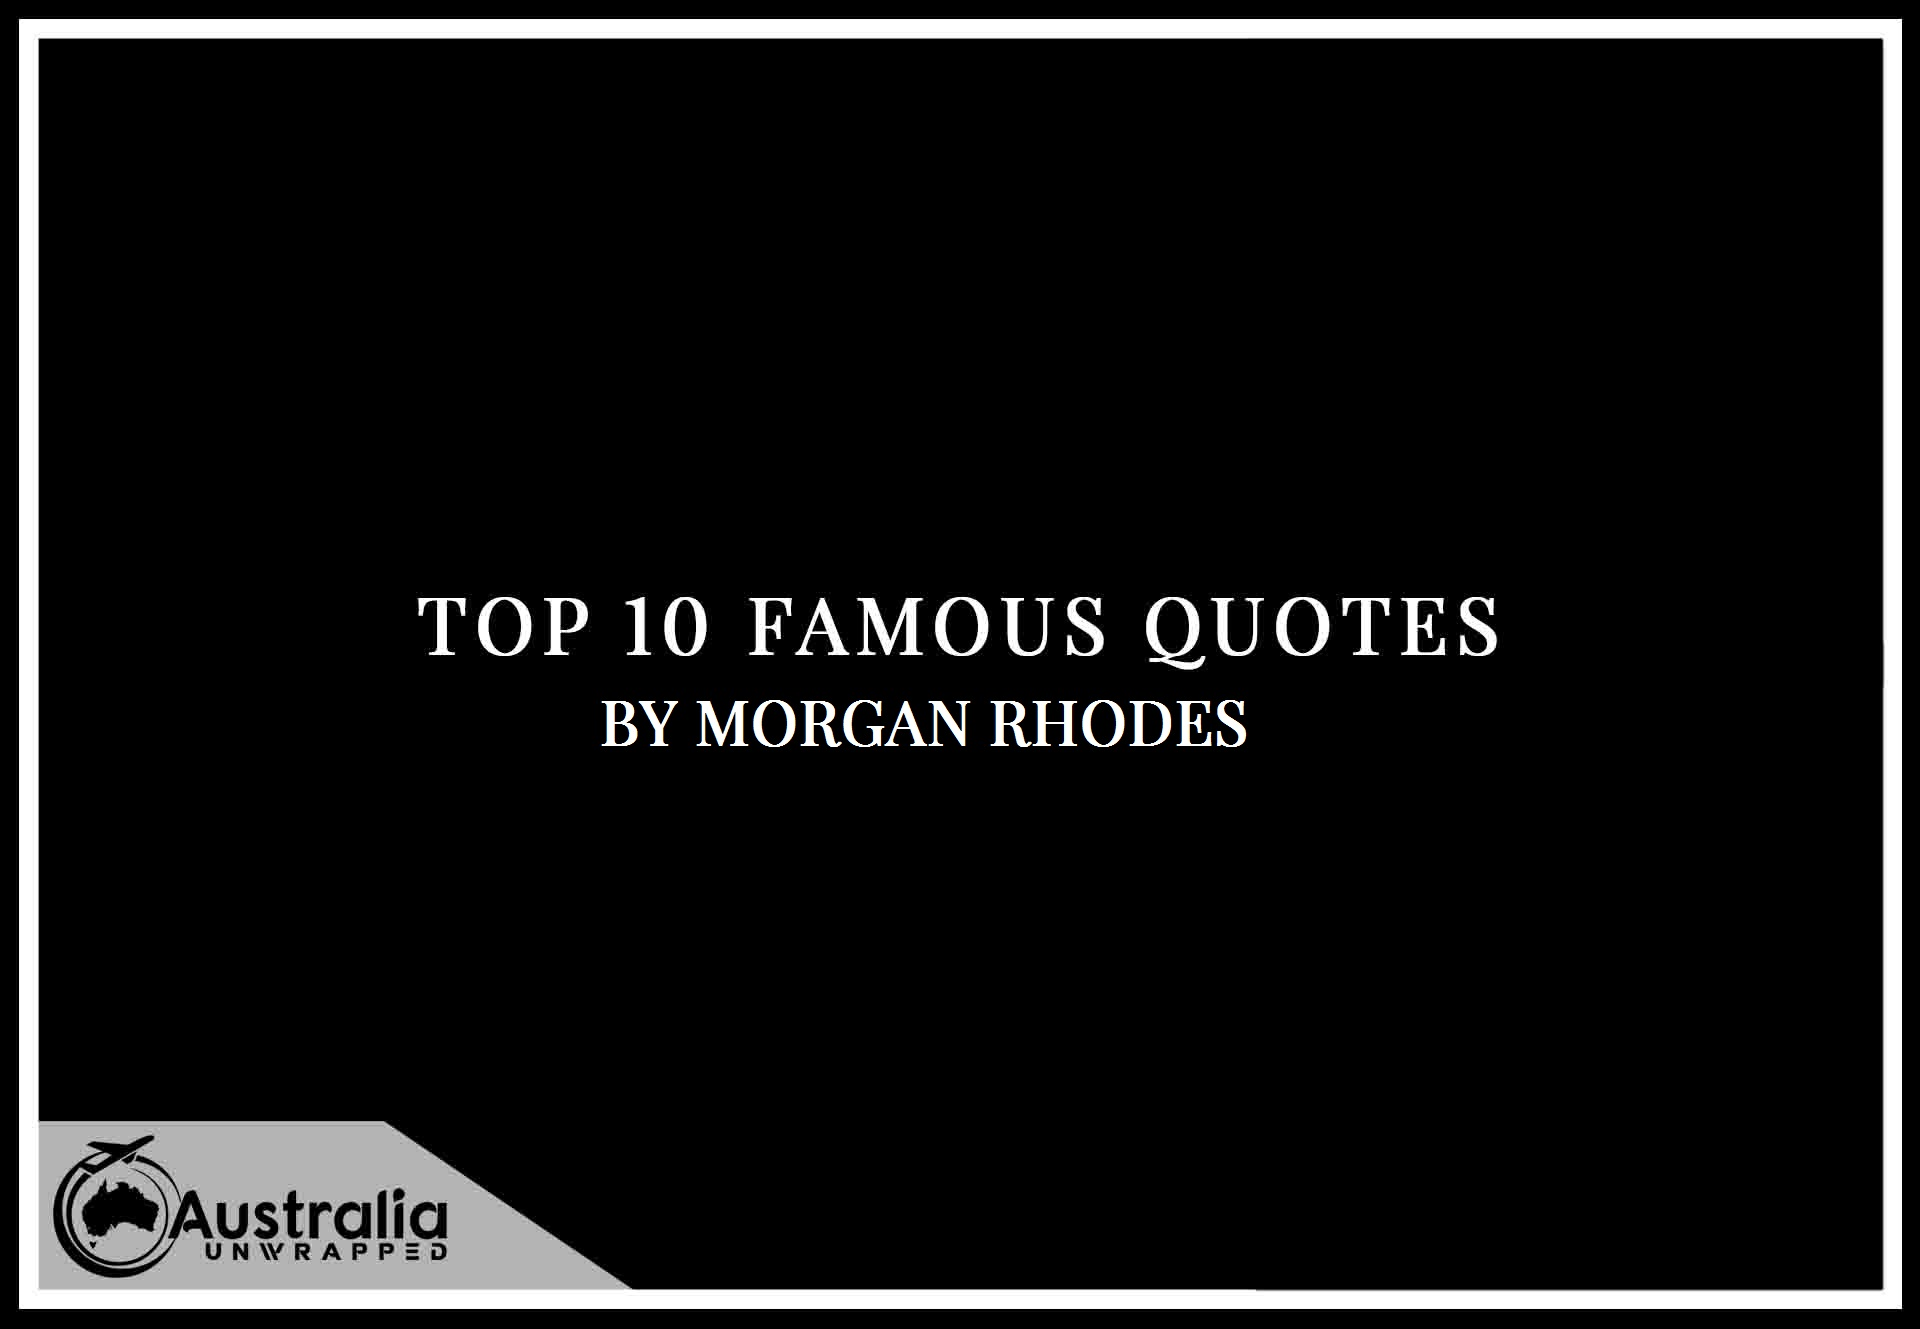 Morgan Rhodes's Top 10 Popular and Famous Quotes